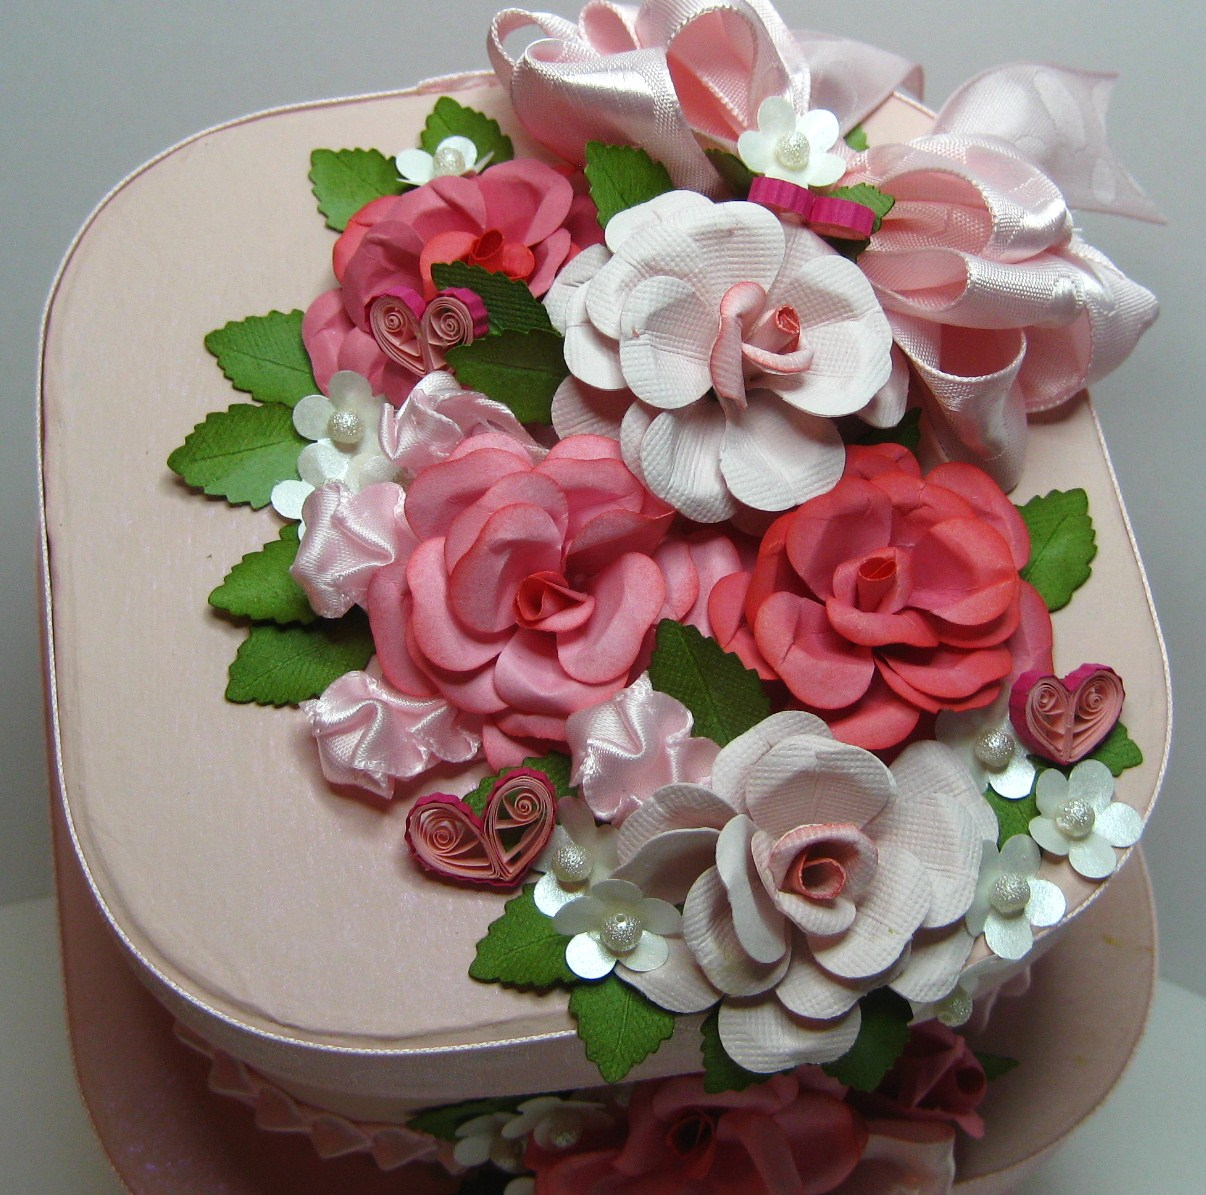 Appel quilling garden floral punch rose and quilled hearts cake box mightylinksfo